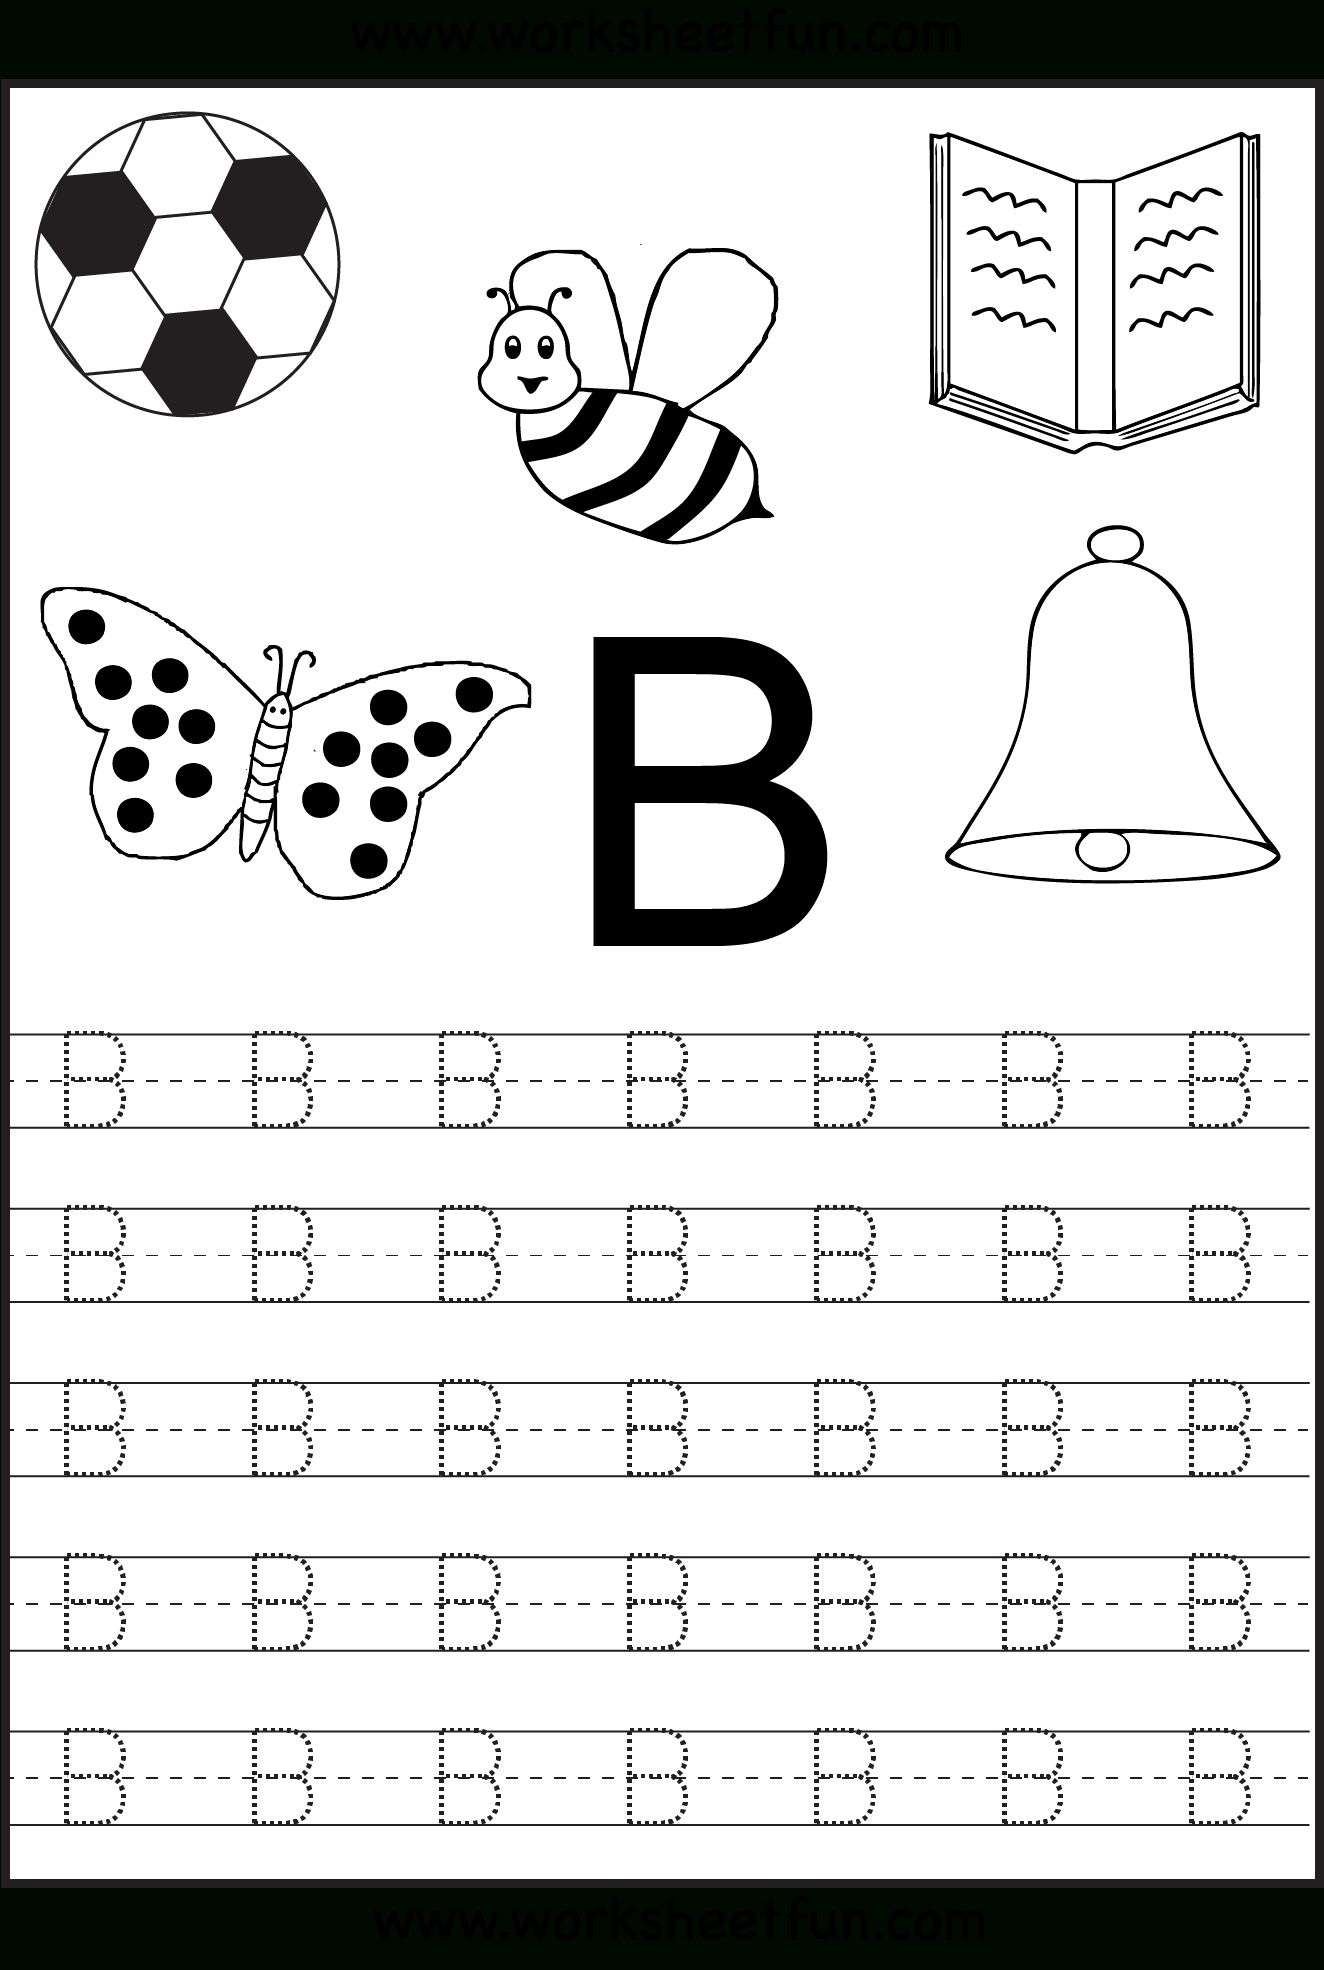 Free Printable Letter Tracing Worksheets For Kindergarten – 26 - Free Printable Alphabet Tracing Worksheets For Kindergarten